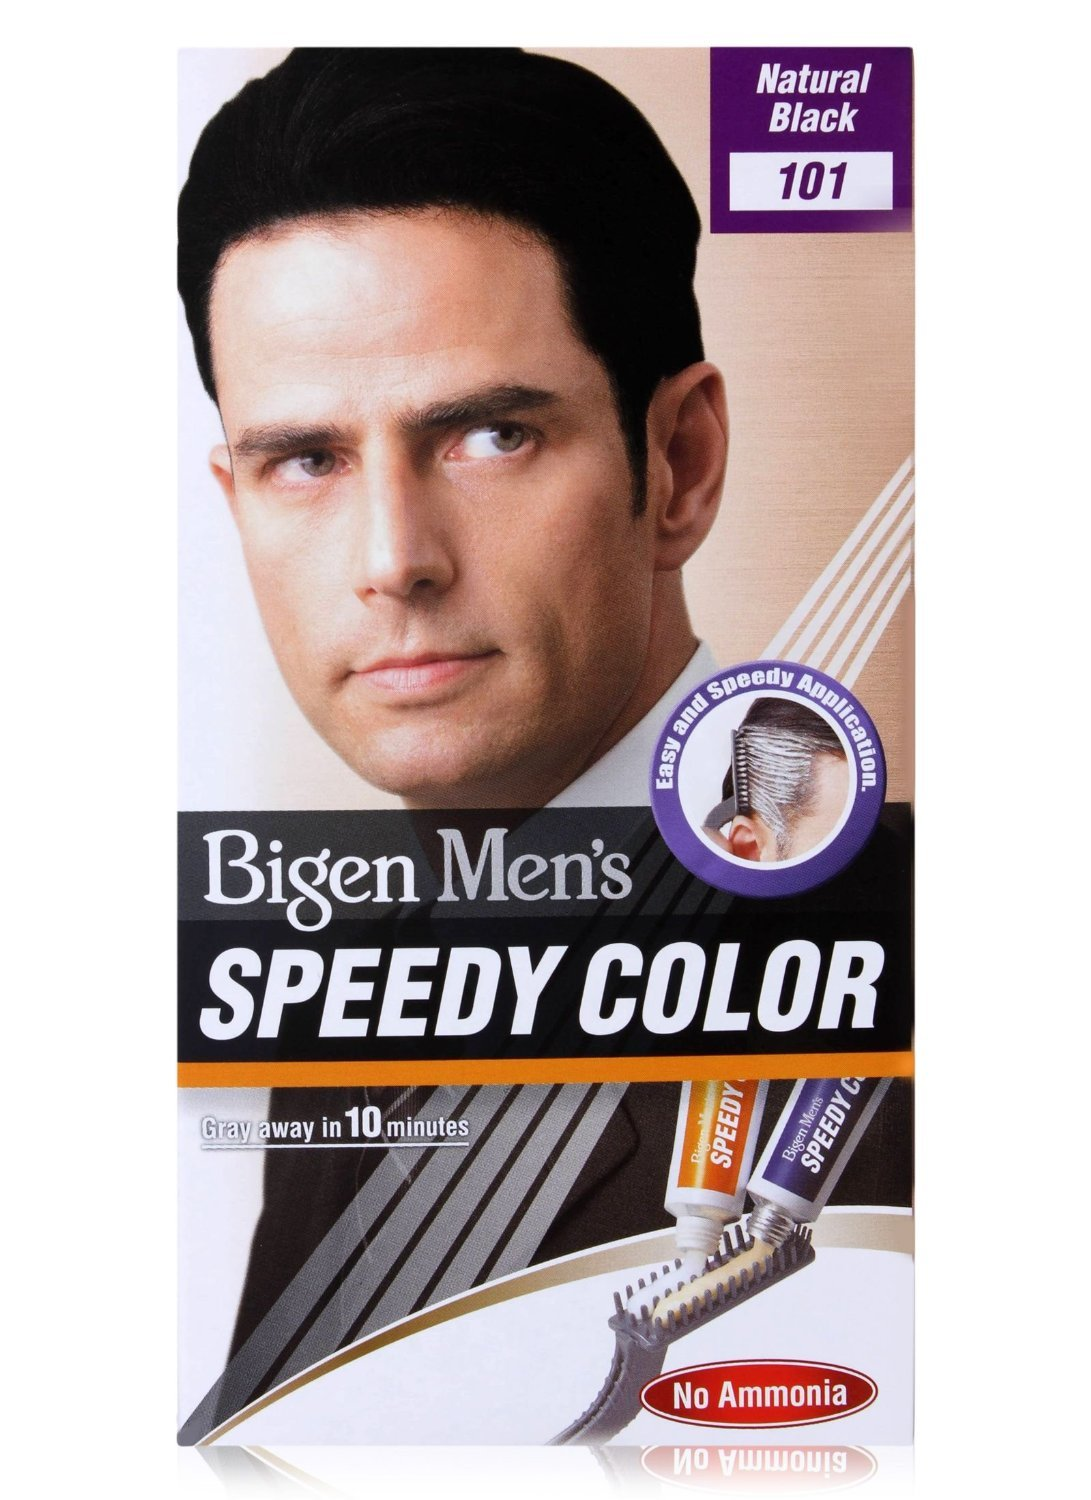 Bigen Men\'s Speedy Colour (Natural Black) 101: Amazon.co.uk: Beauty